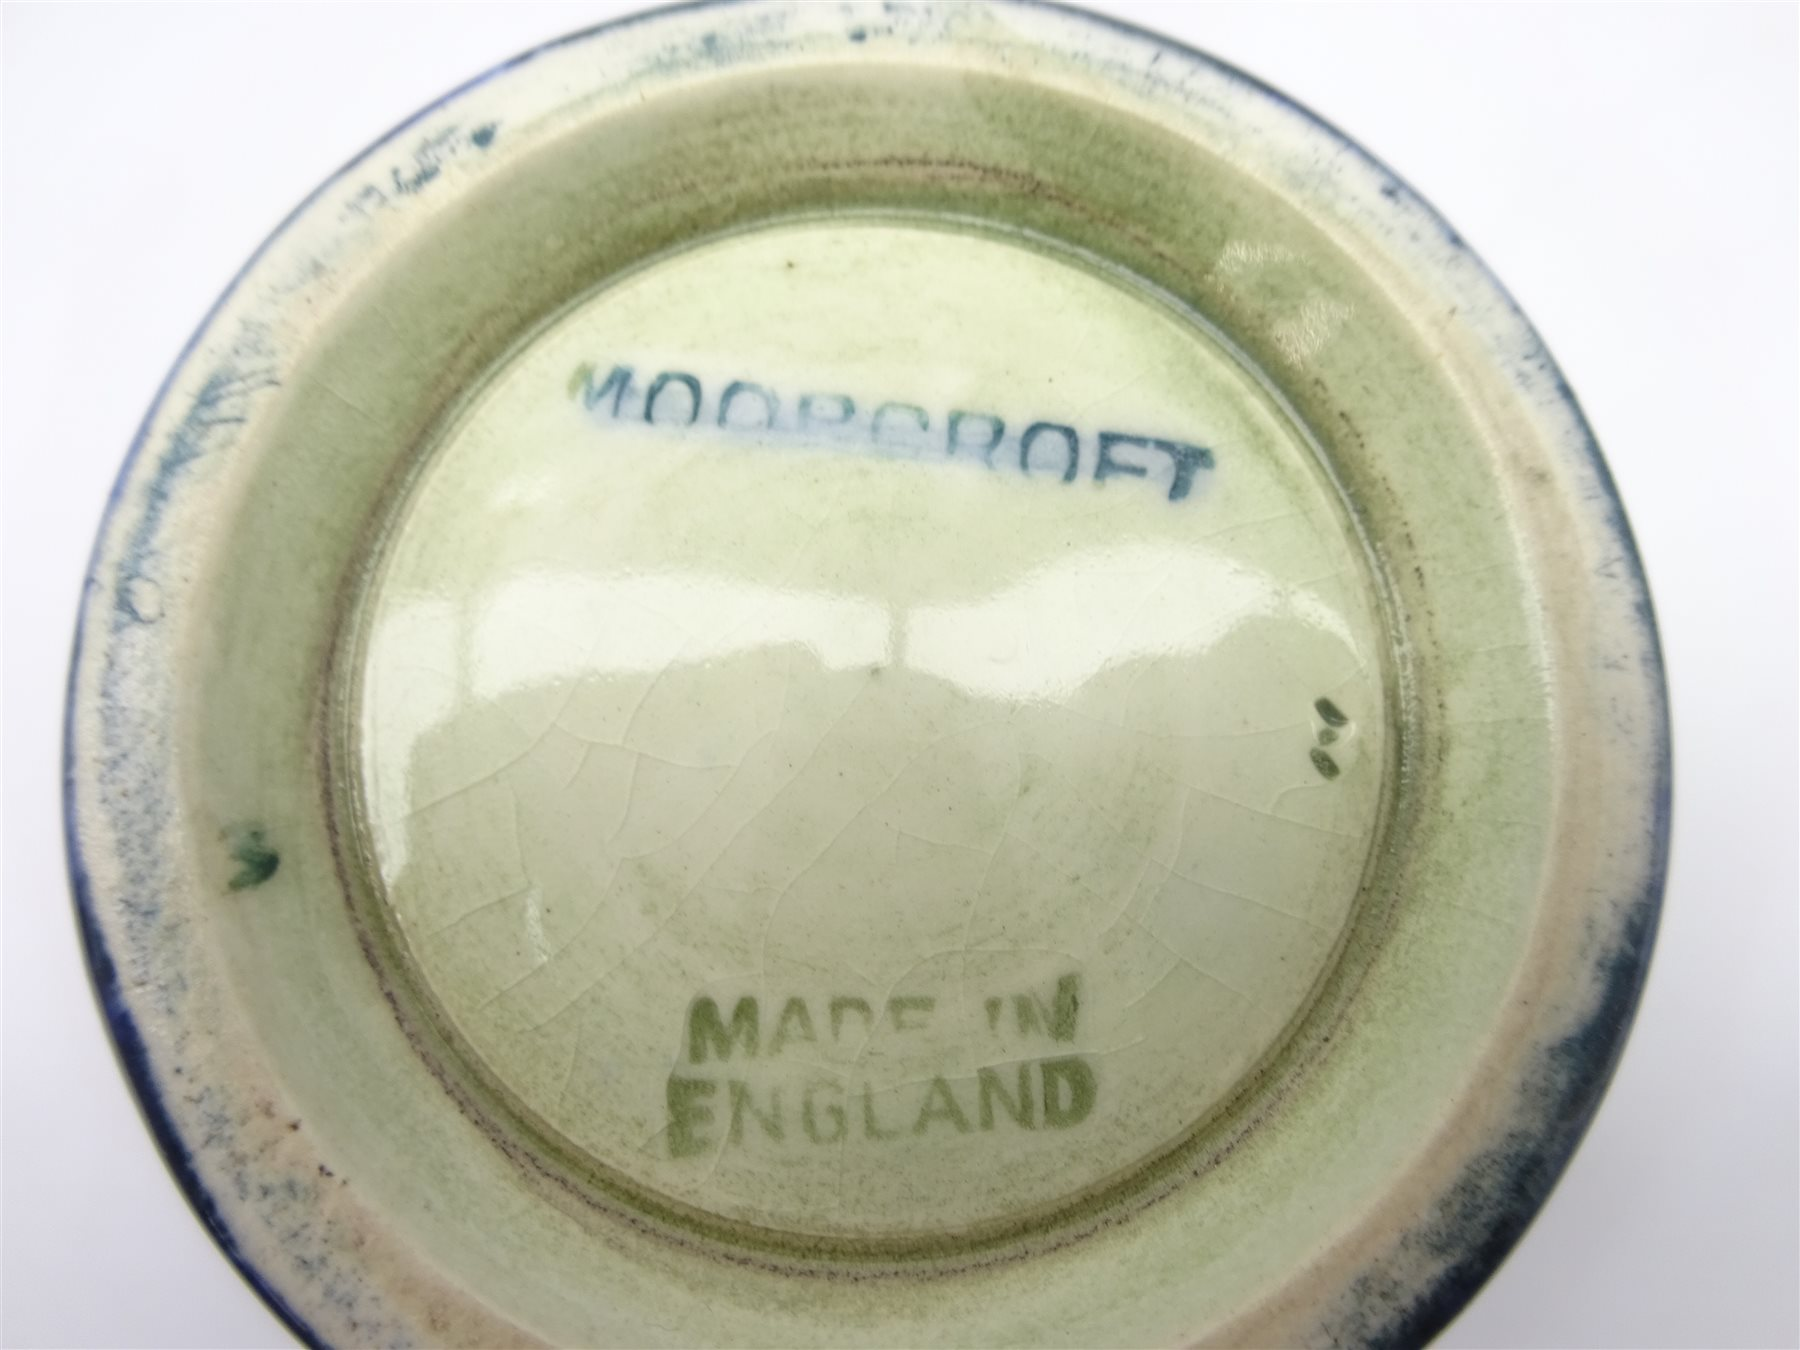 Marks guides moorcroft Instant Appraisal